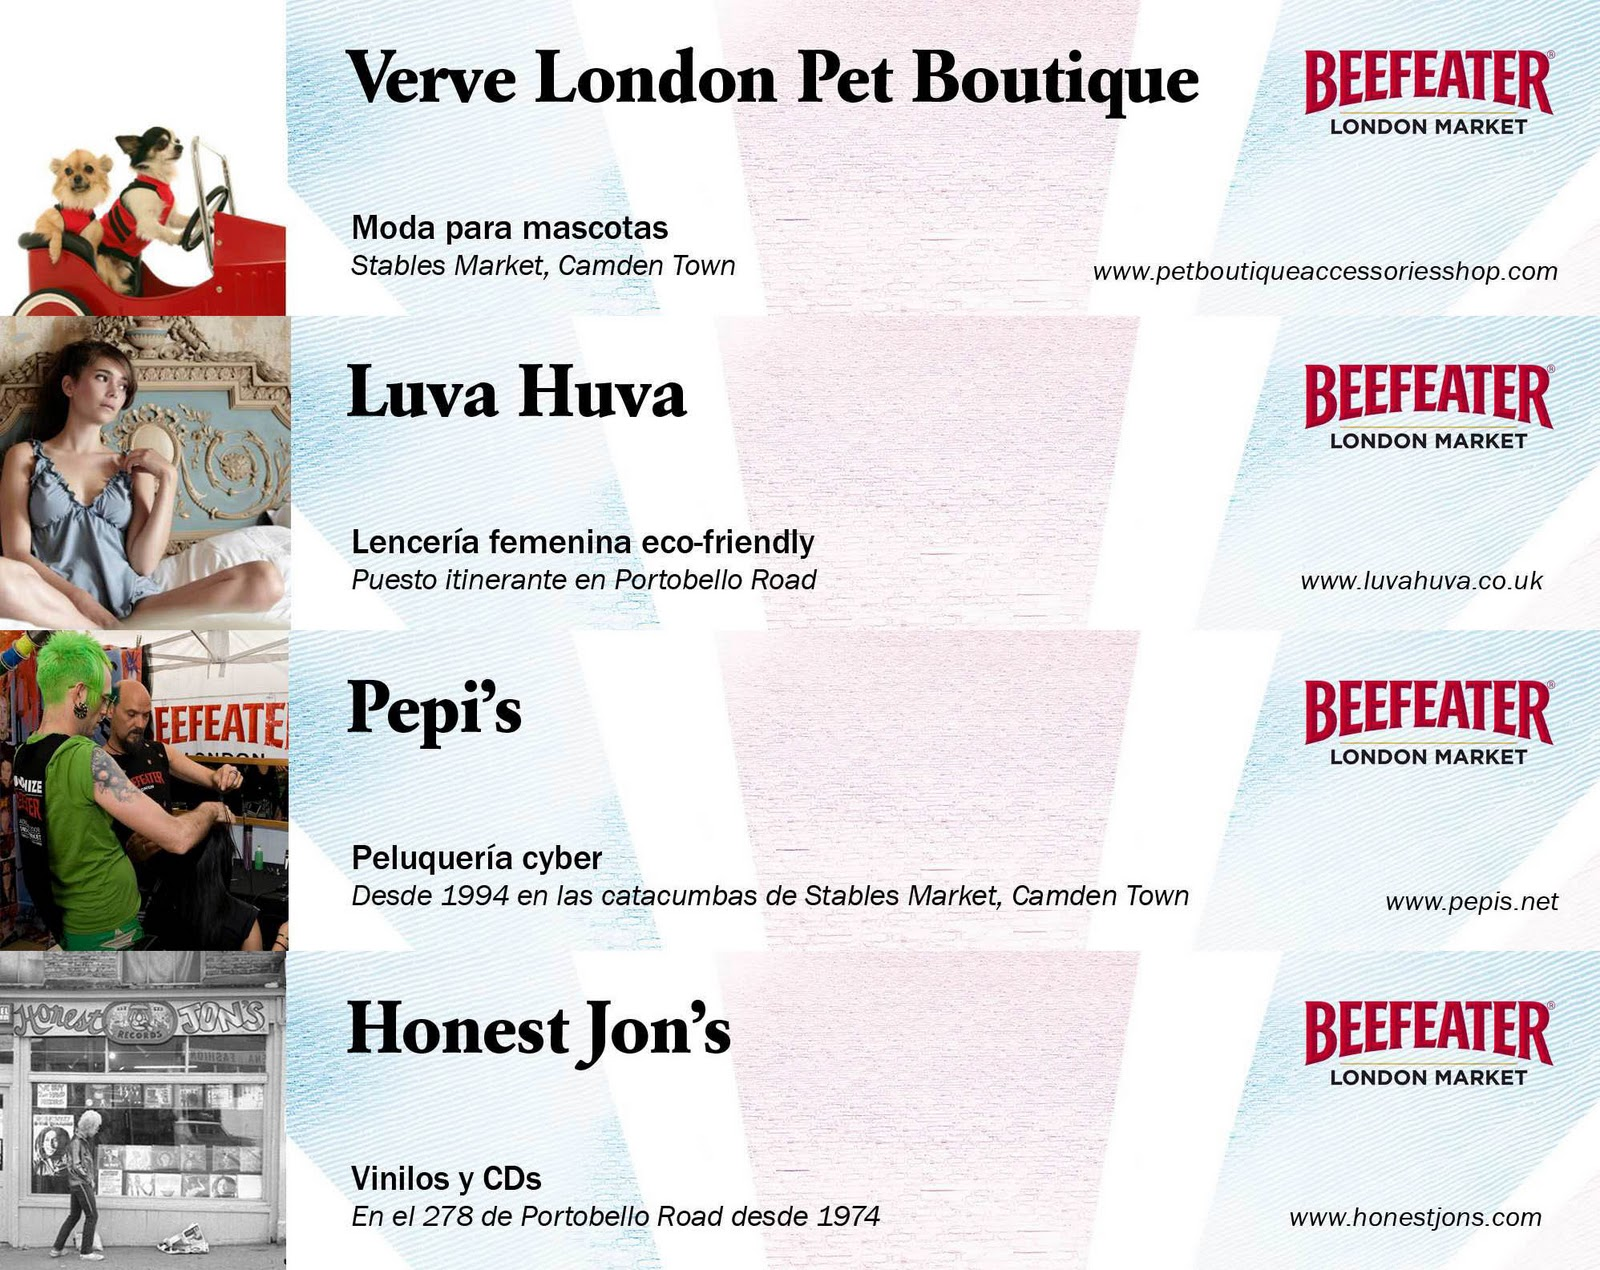 Convertir Libras Esterlinas A Euros Fashion And Beauty Now No Te Pierdas El Beefeater London